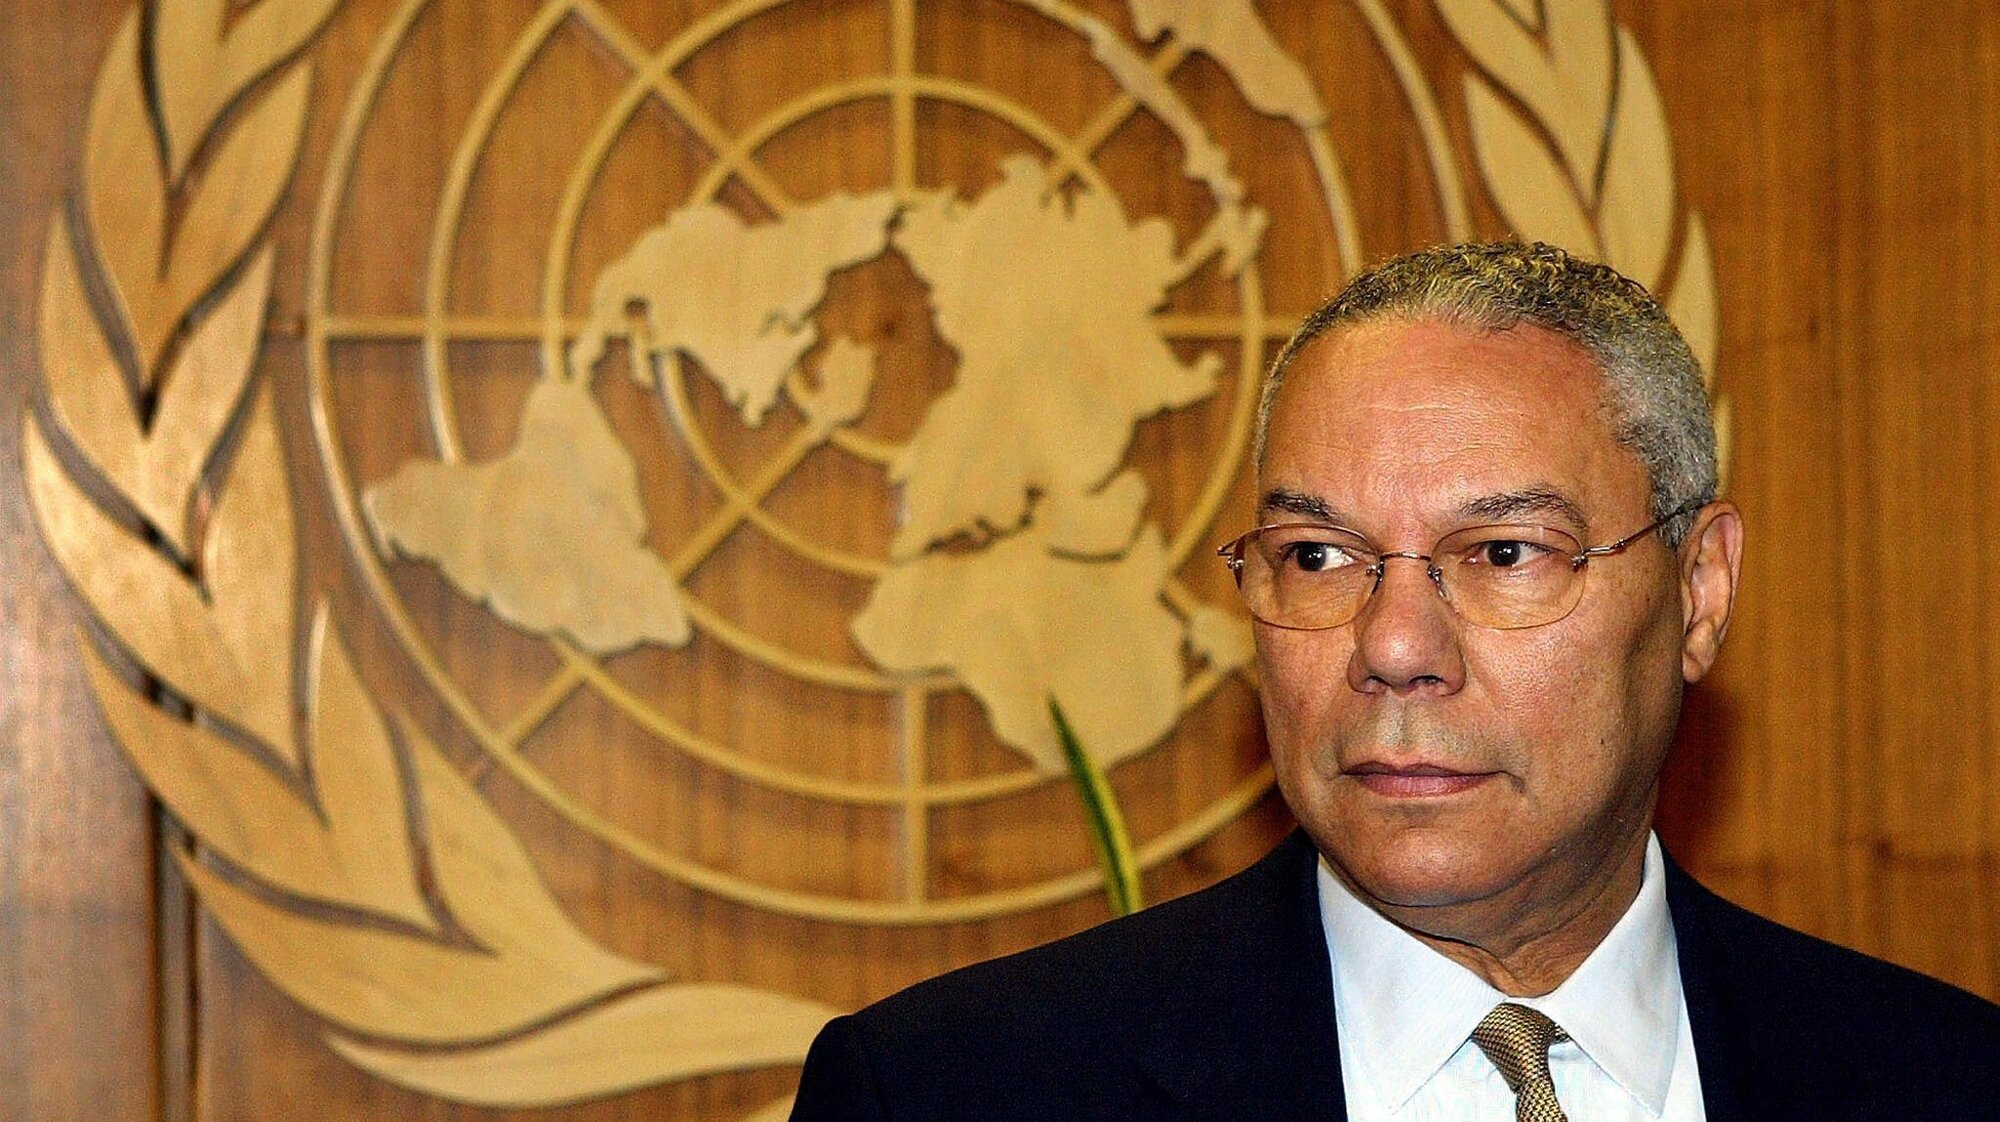 epa09530044 (FILE) - US Secretary of State Colin Powell waits for United Nations Secretary General Kofi Annan outside Annan's office, at the UN Headquarters in New York City, USA, 21 August 2003 (reissued 18 October 2021). Colin Powell has died at the age of 84, his family said on Facebook on 18 October 2021.  EPA/MATT CAMPBELL